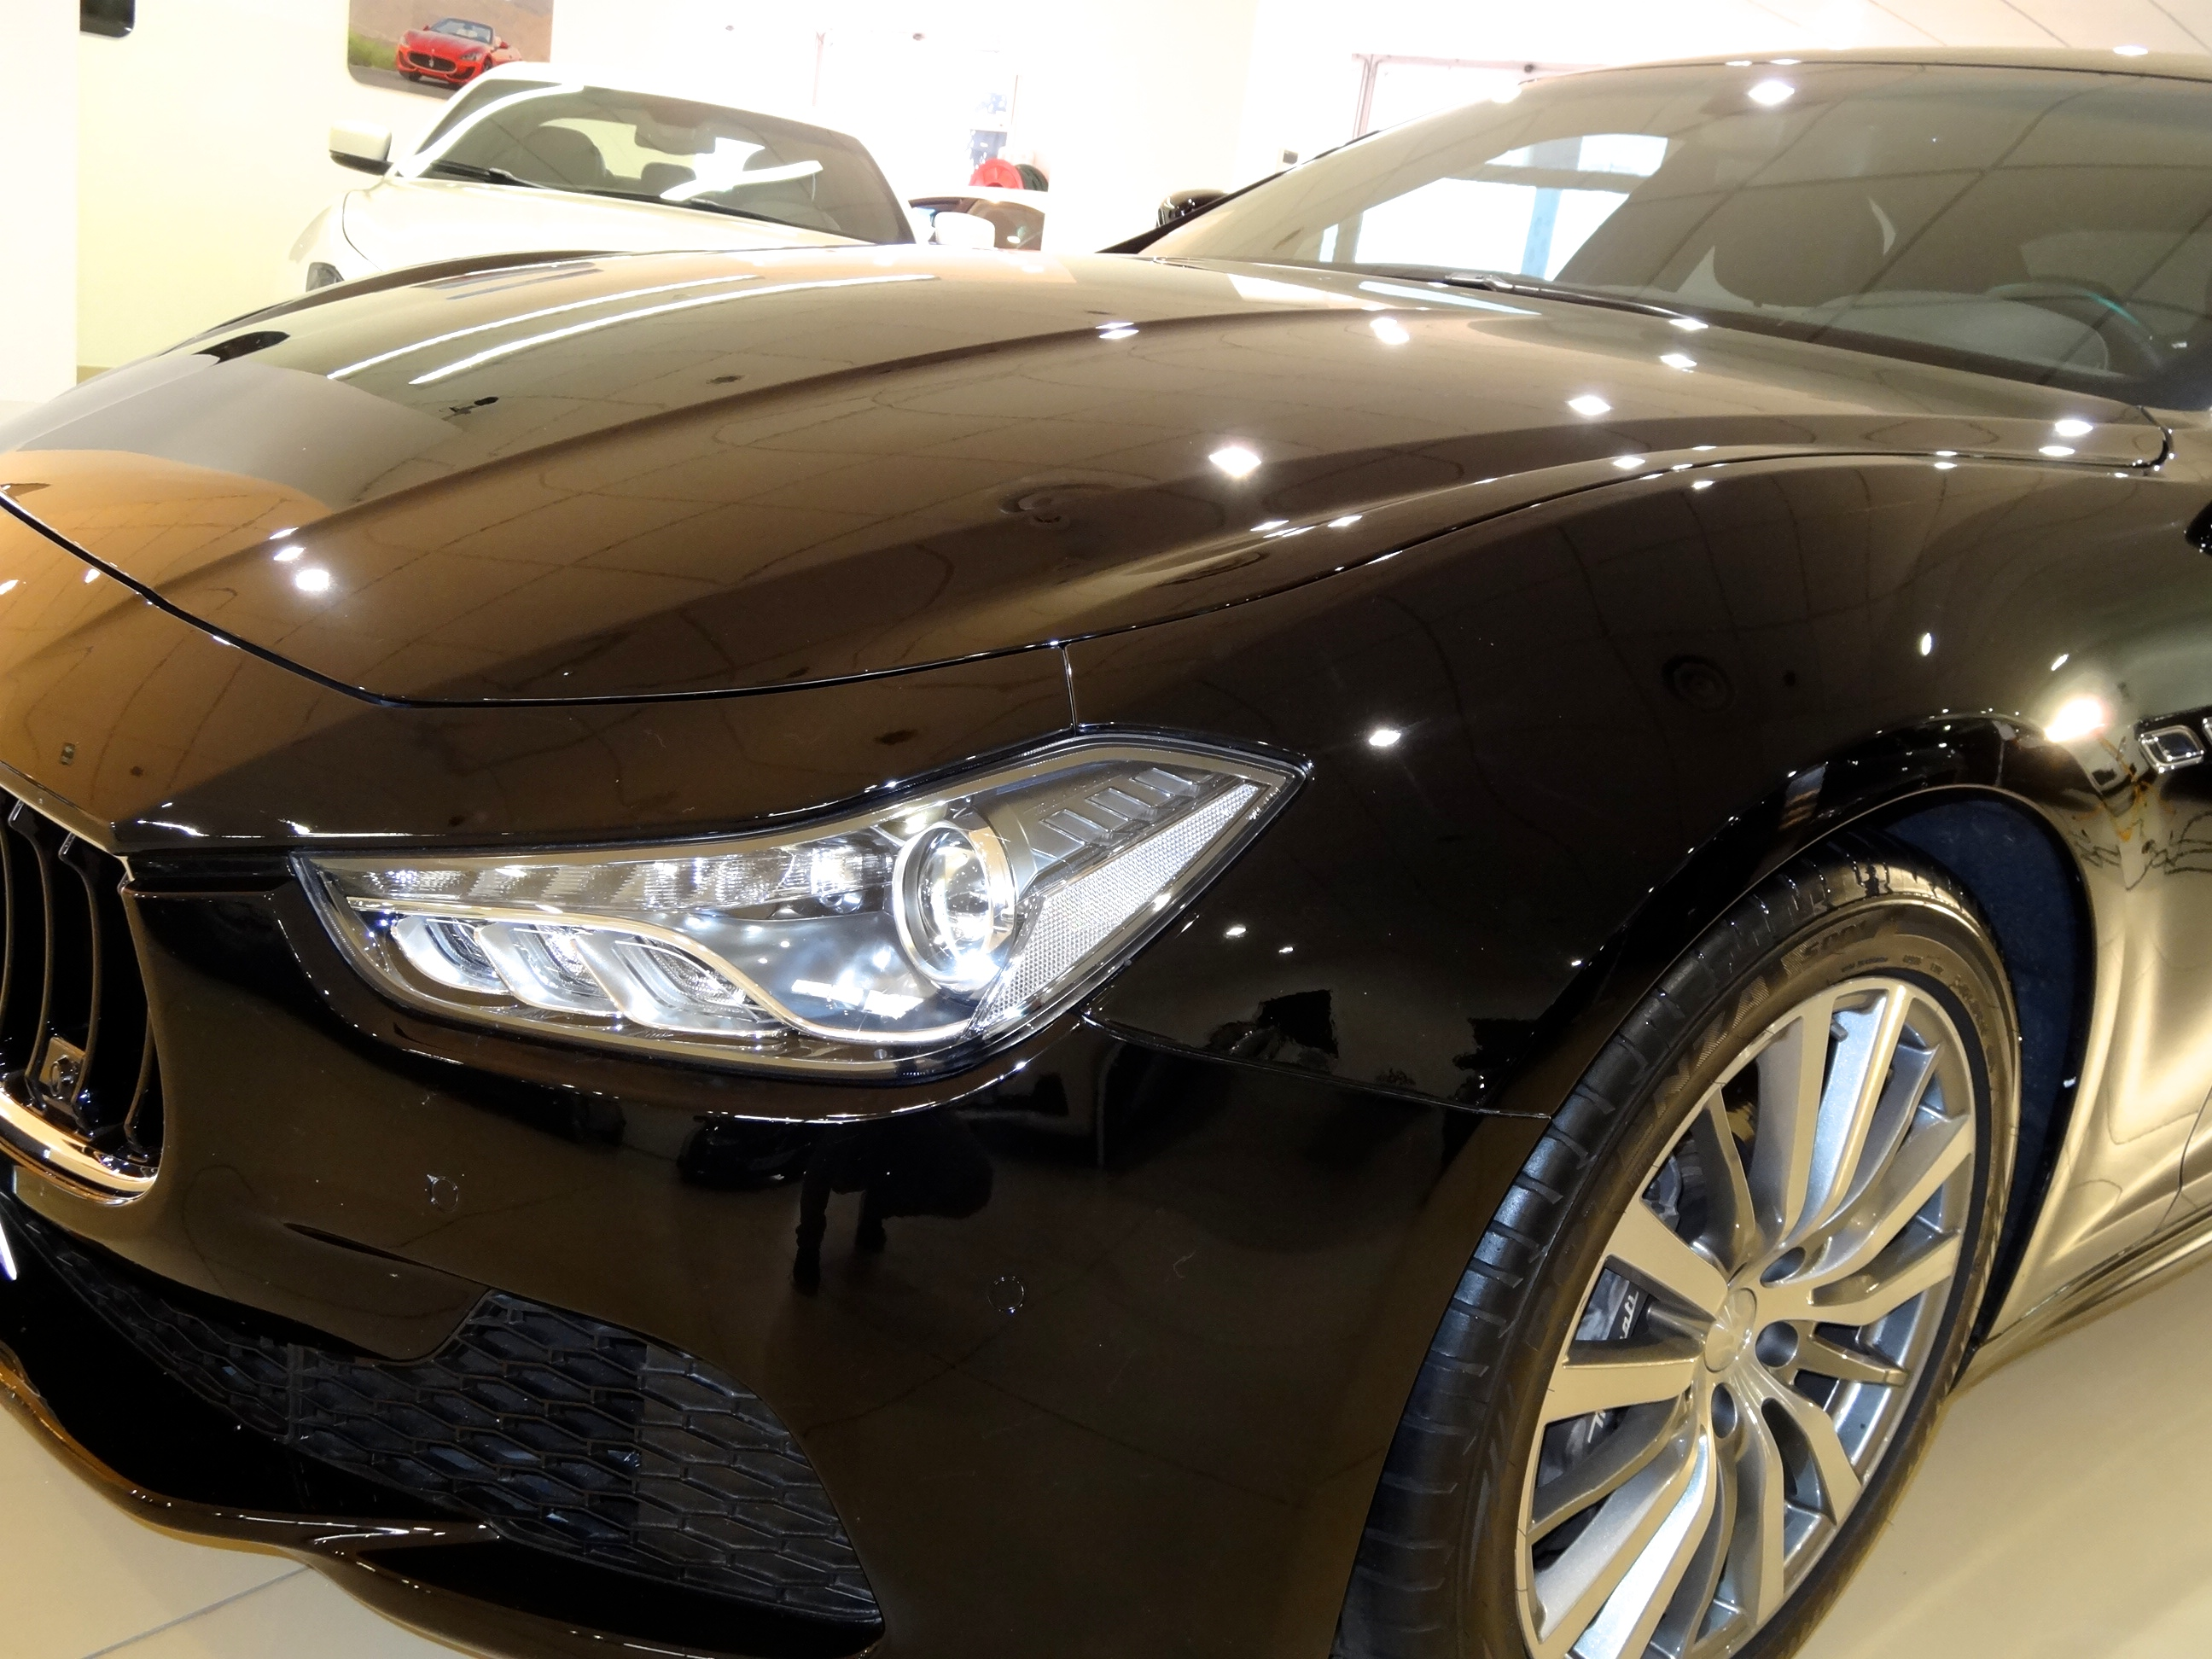 Thalass Auto Detailing Cannes Nice Monaco Nettoyage Luxe Voiture 51